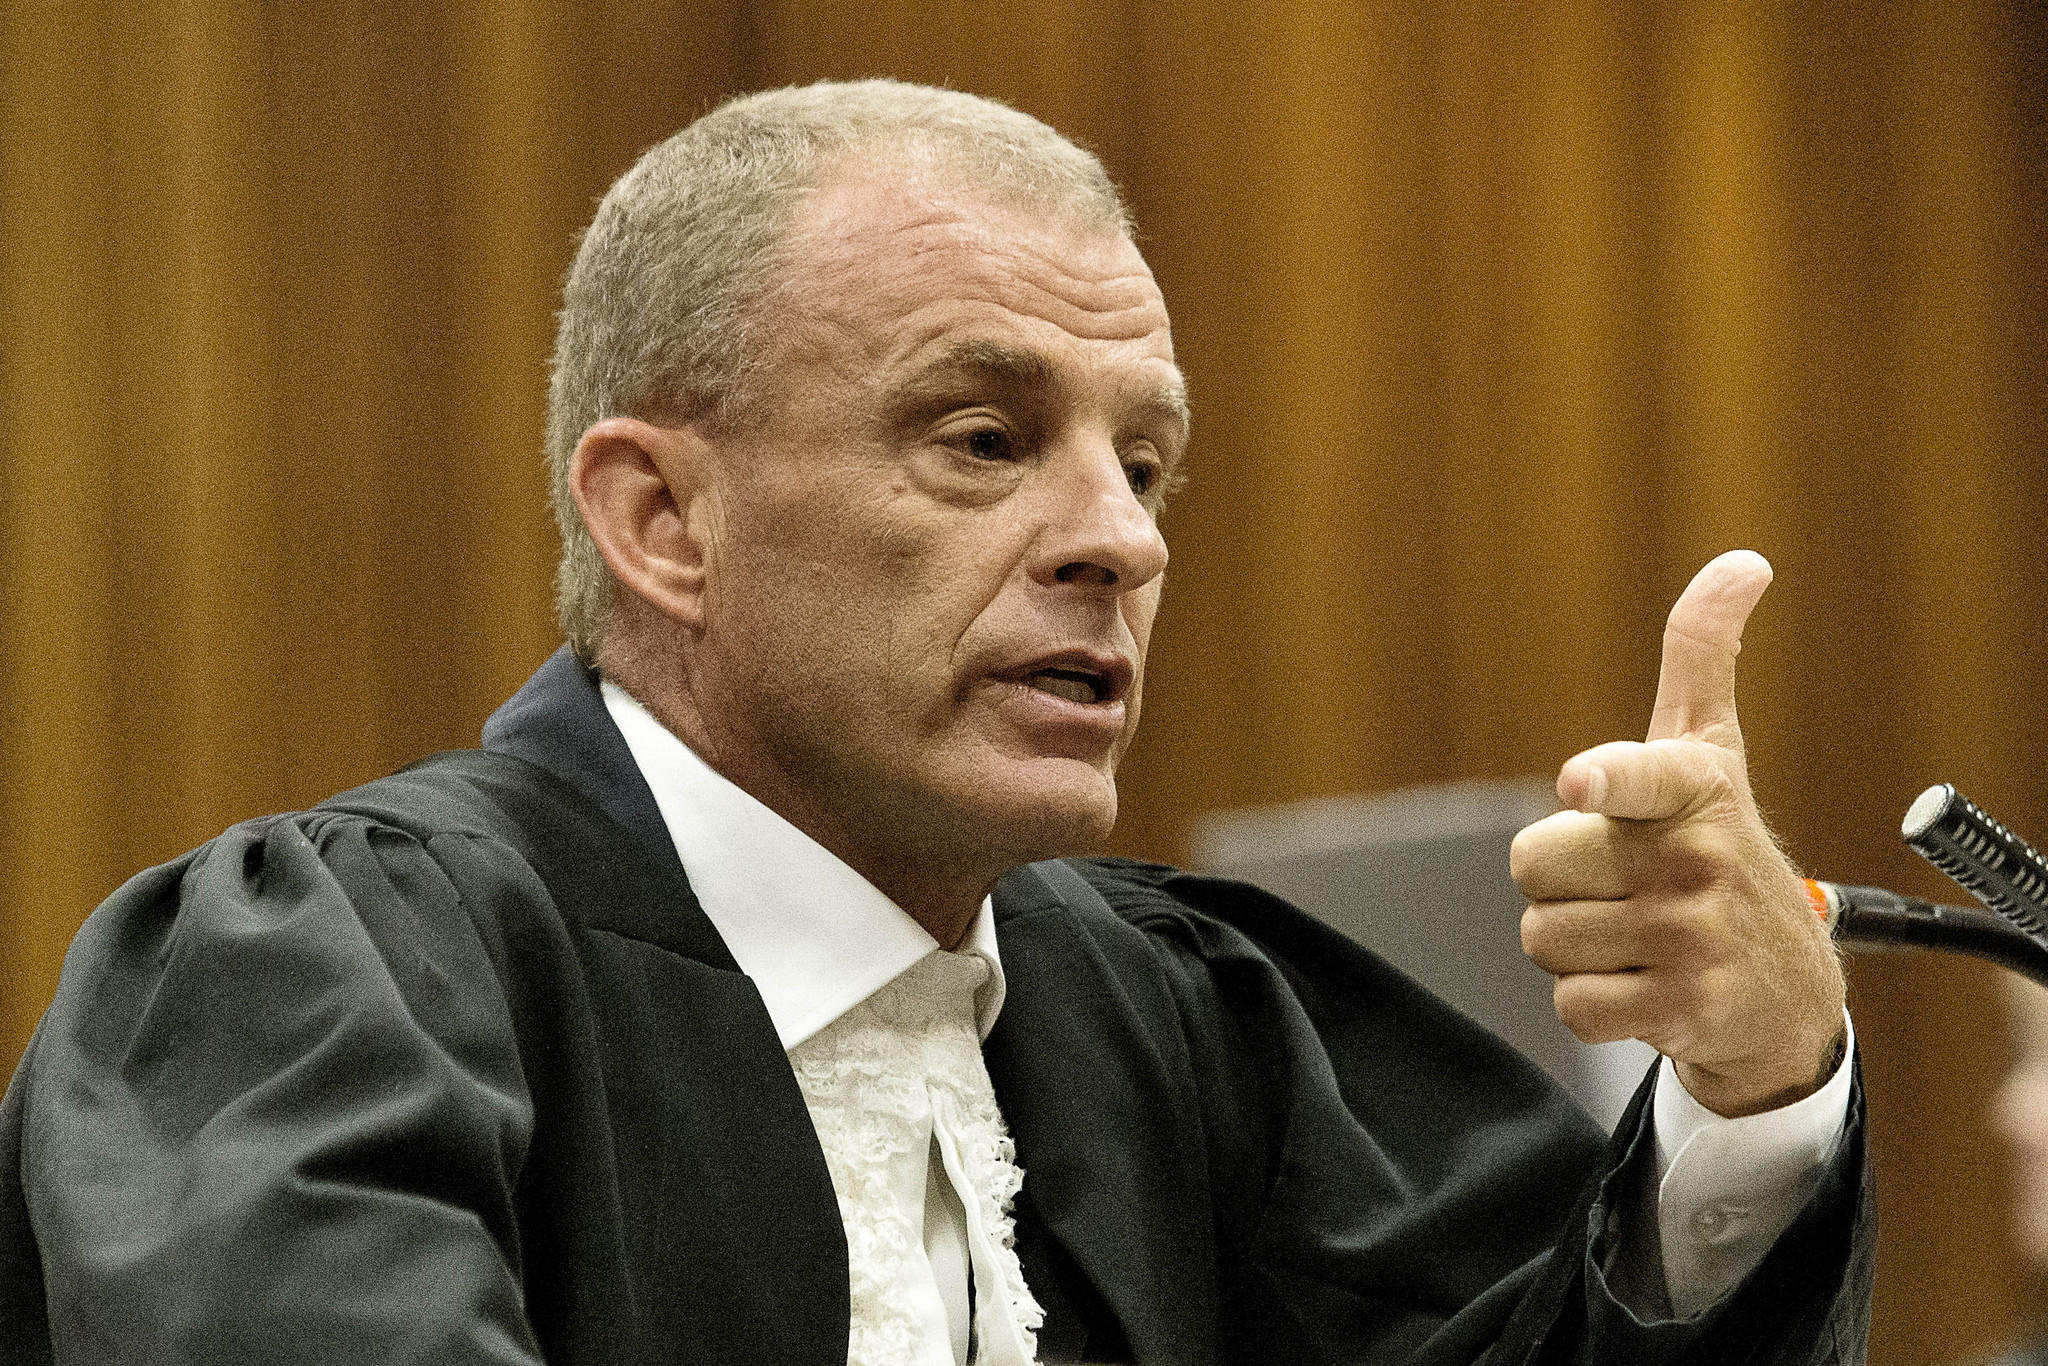 State prosecutor Gerrie Nel gestures while questioning Oscar Pistorius in a Pretoria, South Africa, courtroom on Thursday.